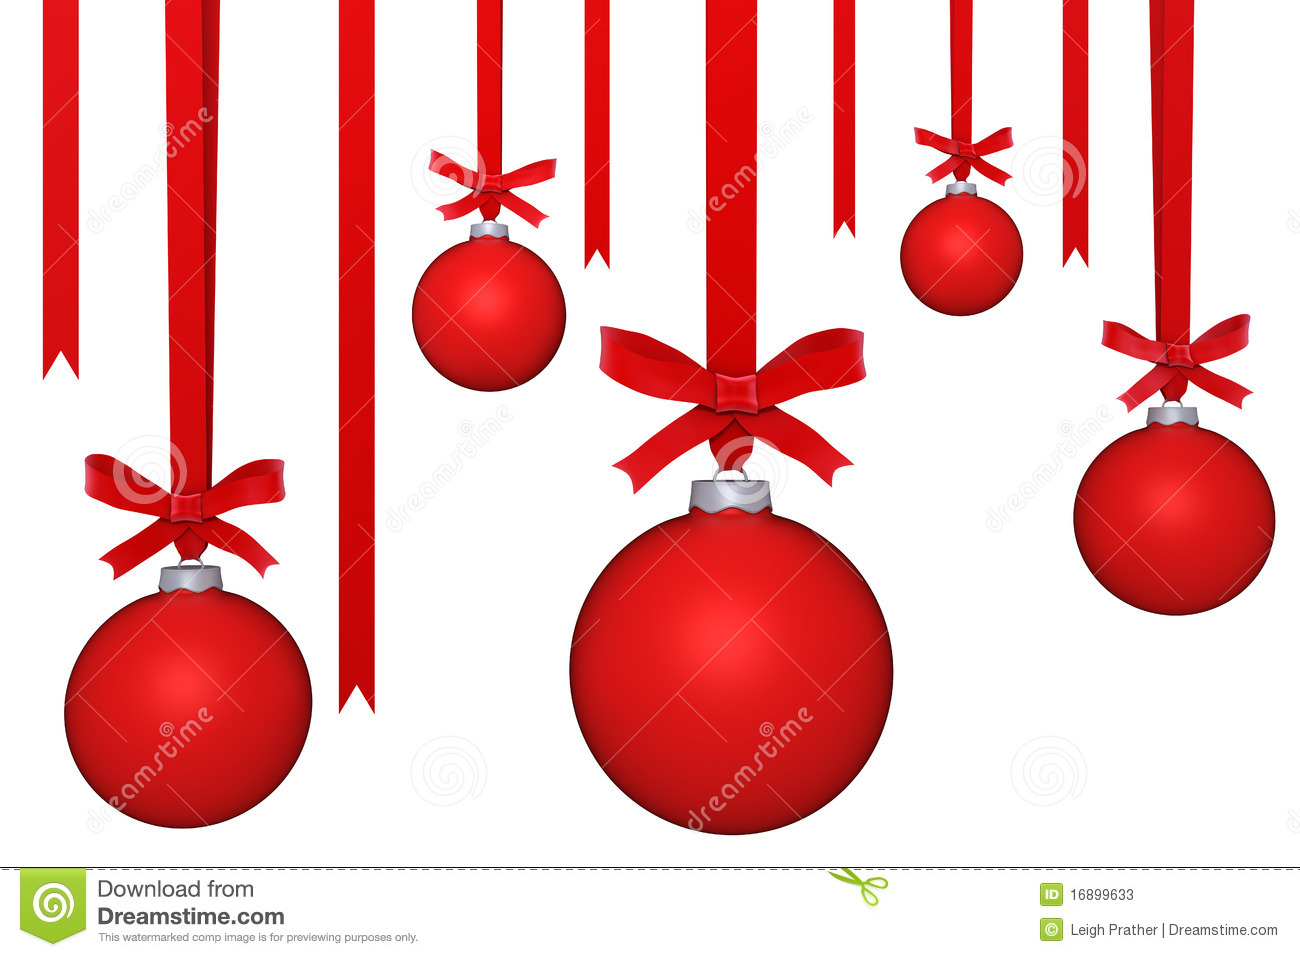 Hanging Ornaments Stock Photos - Image: 16899633